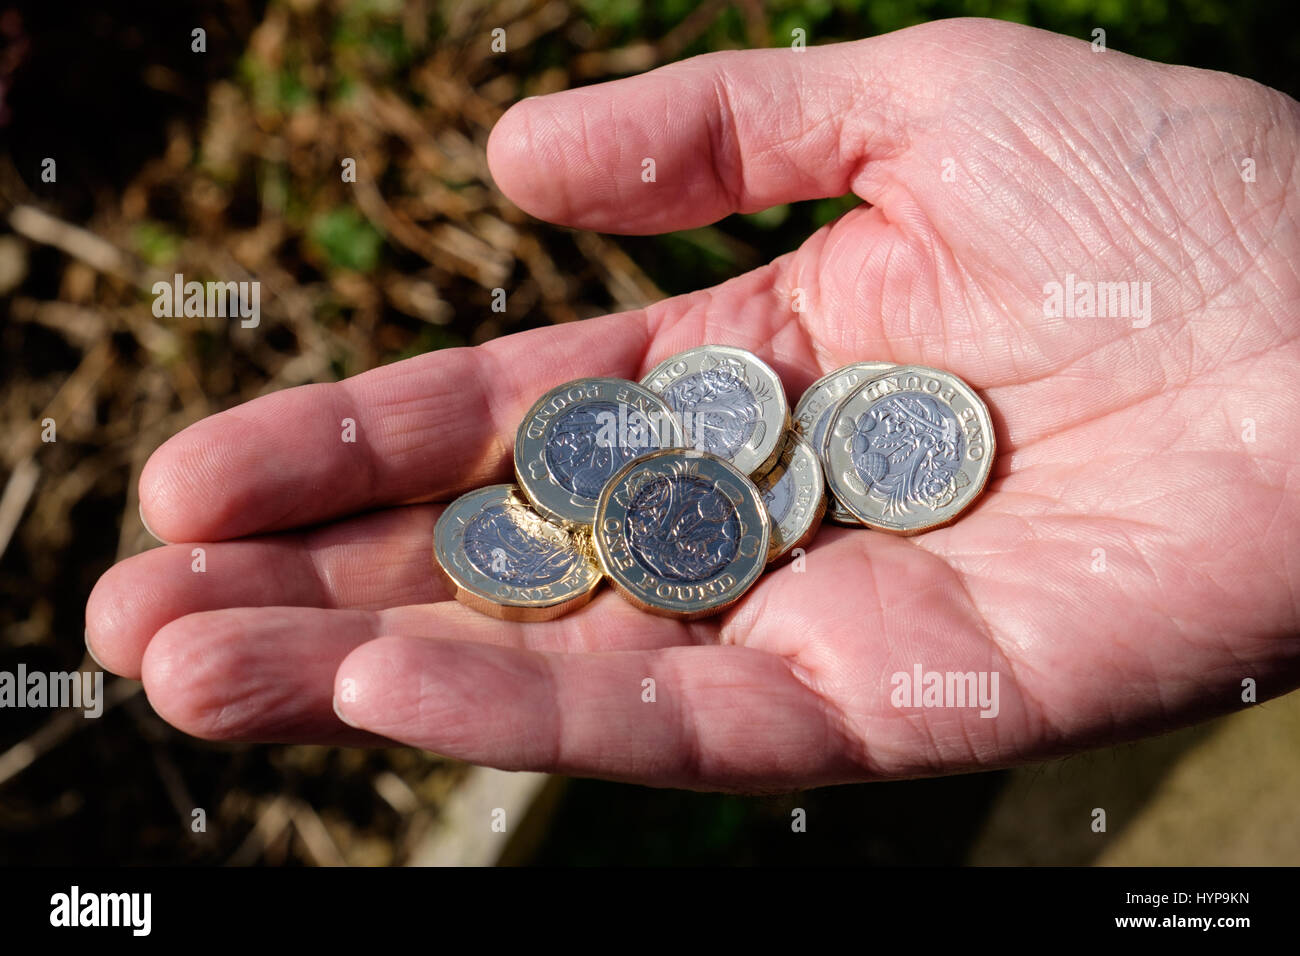 Pound coins in hand - Stock Image